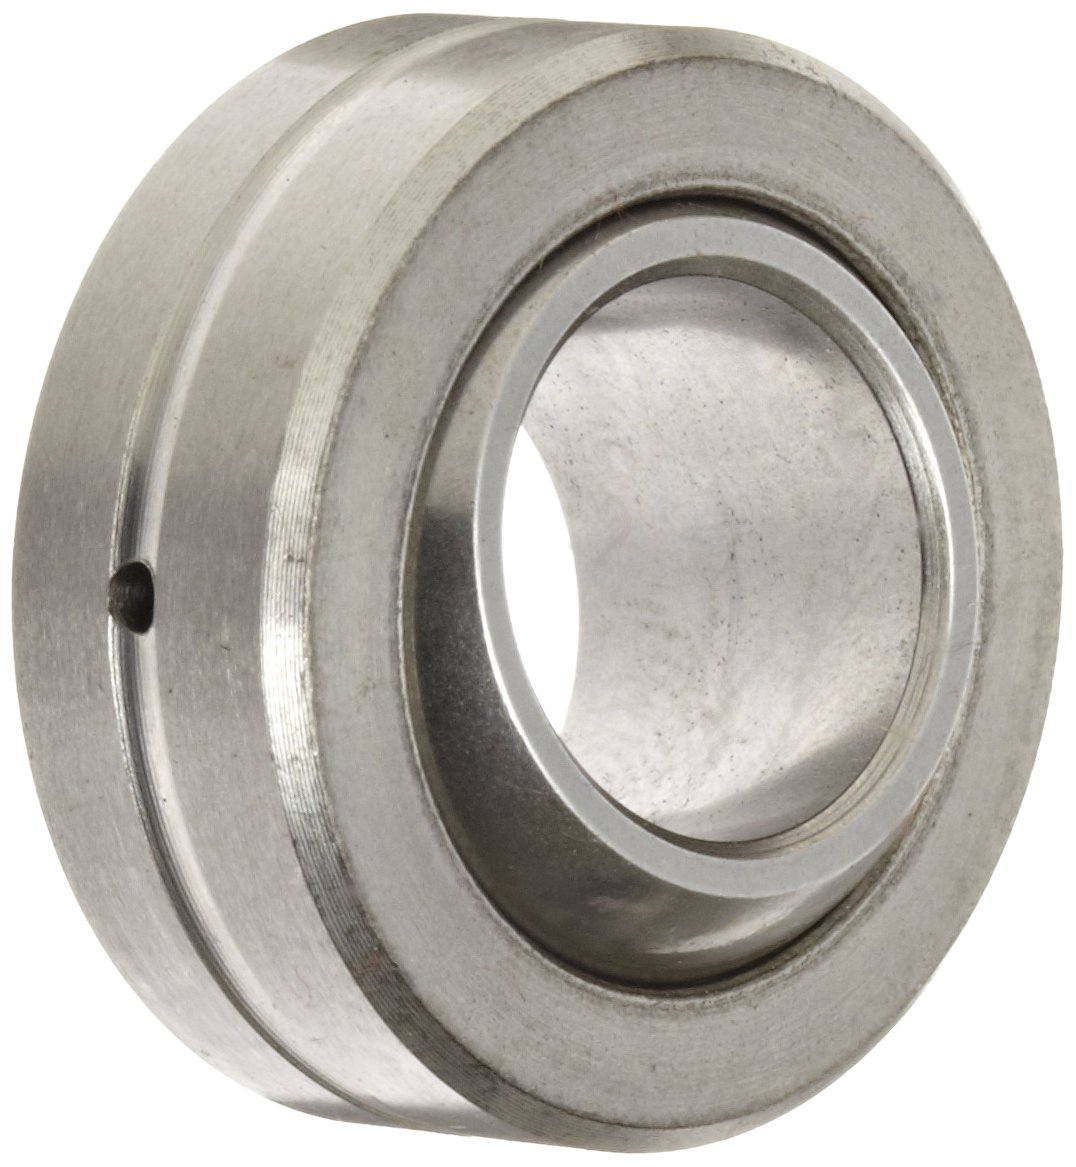 3//4 OD Sealmaster SBG 5SS Two-Piece Precision Spherical Bearing 5//16 Bore 3//8 Inner Ring Width 0.281 Outer Ring Width 3//4 OD 3//8 Inner Ring Width 0.281 Outer Ring Width Regal